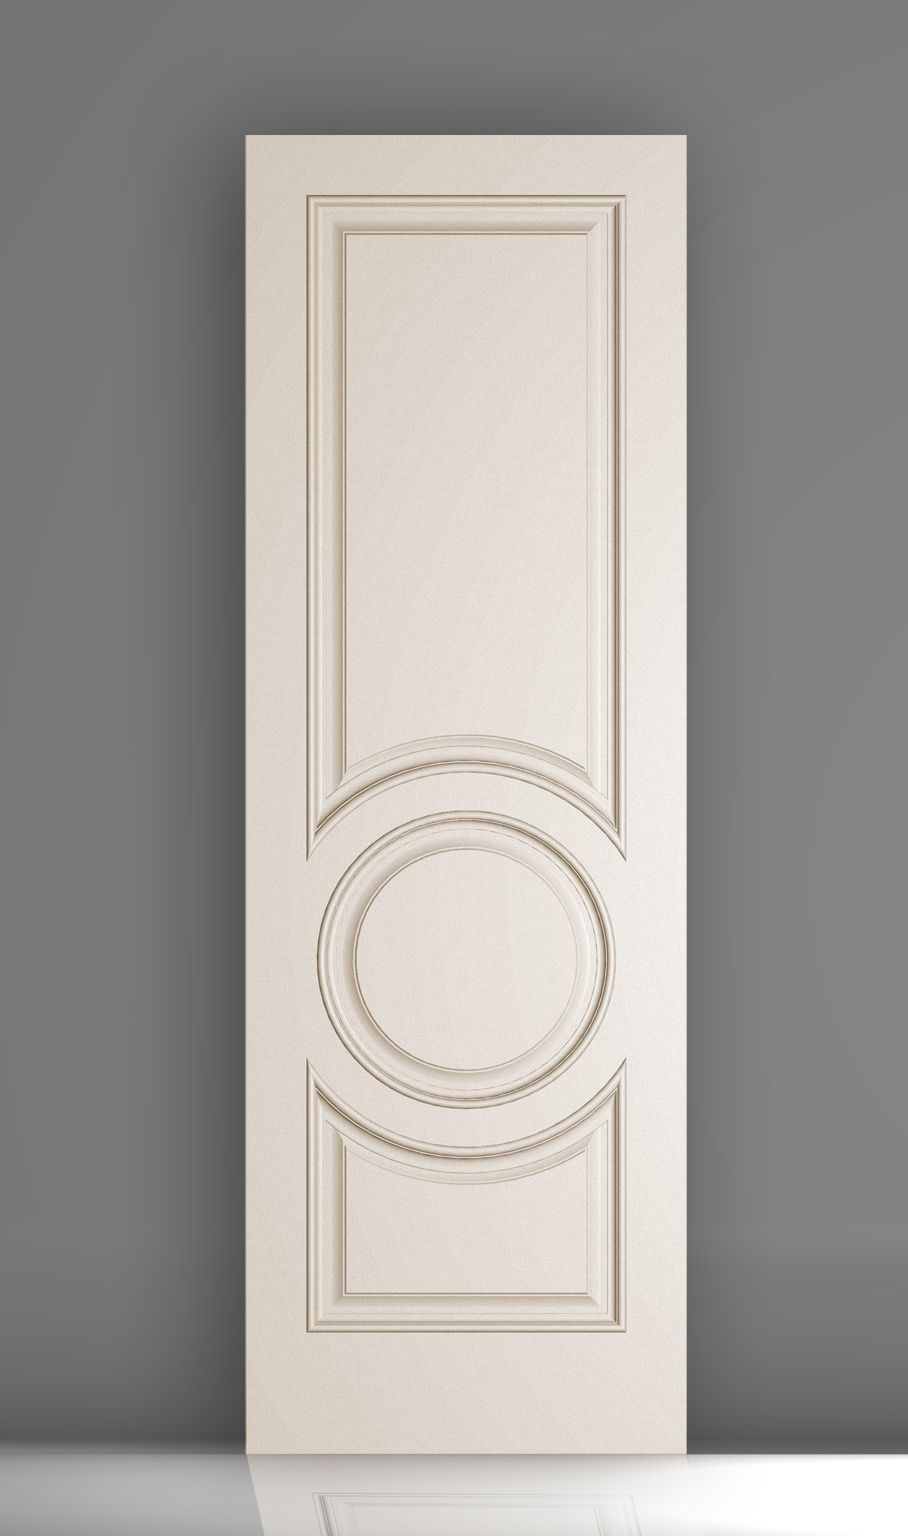 Door G3A w/Panels & Door G3A w/Panels | Champion Doors | Pinterest | Doors Door design ...